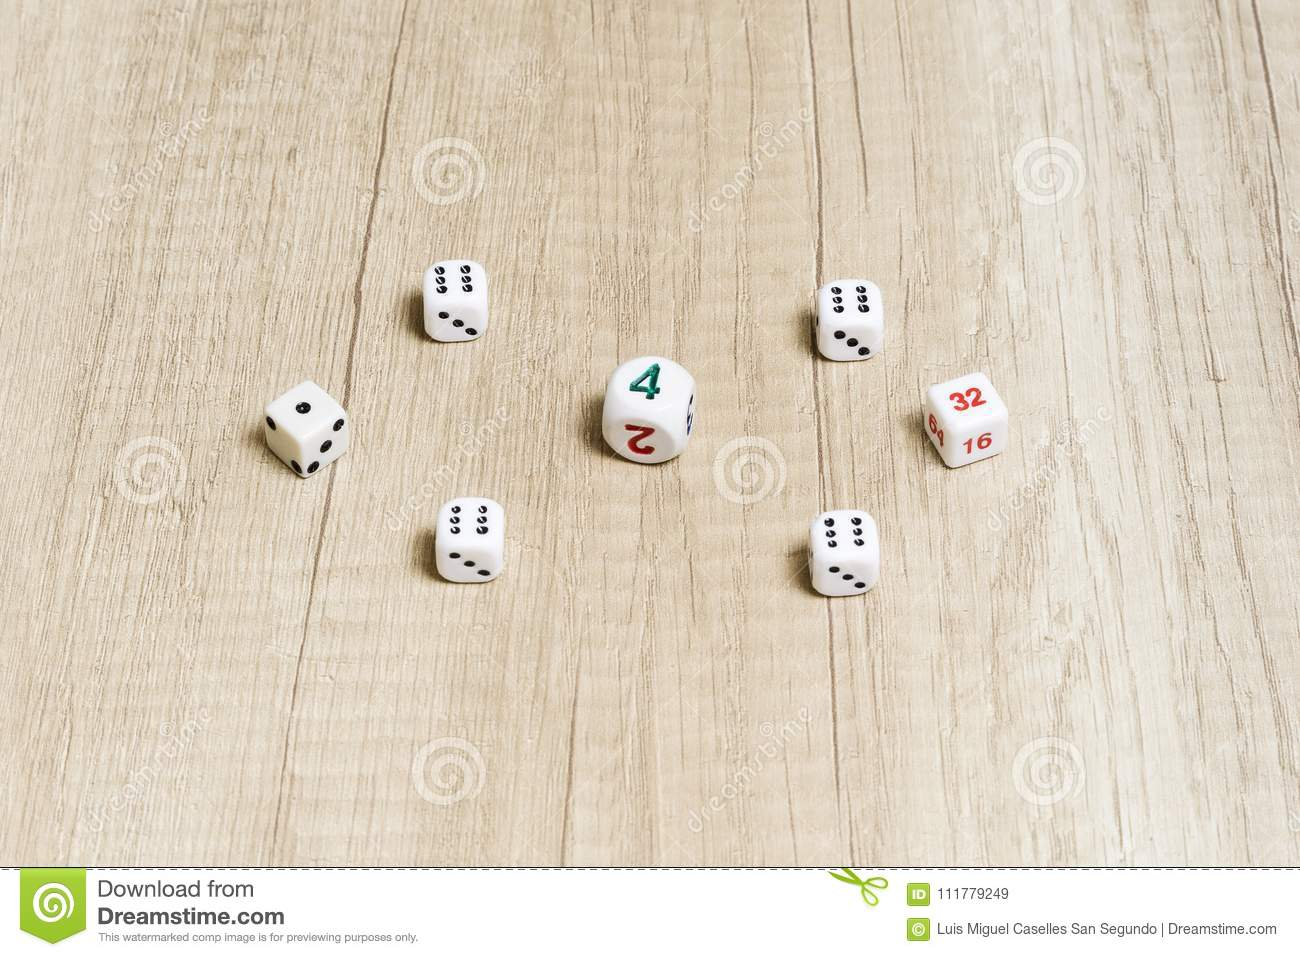 Game of dice on a wooden table